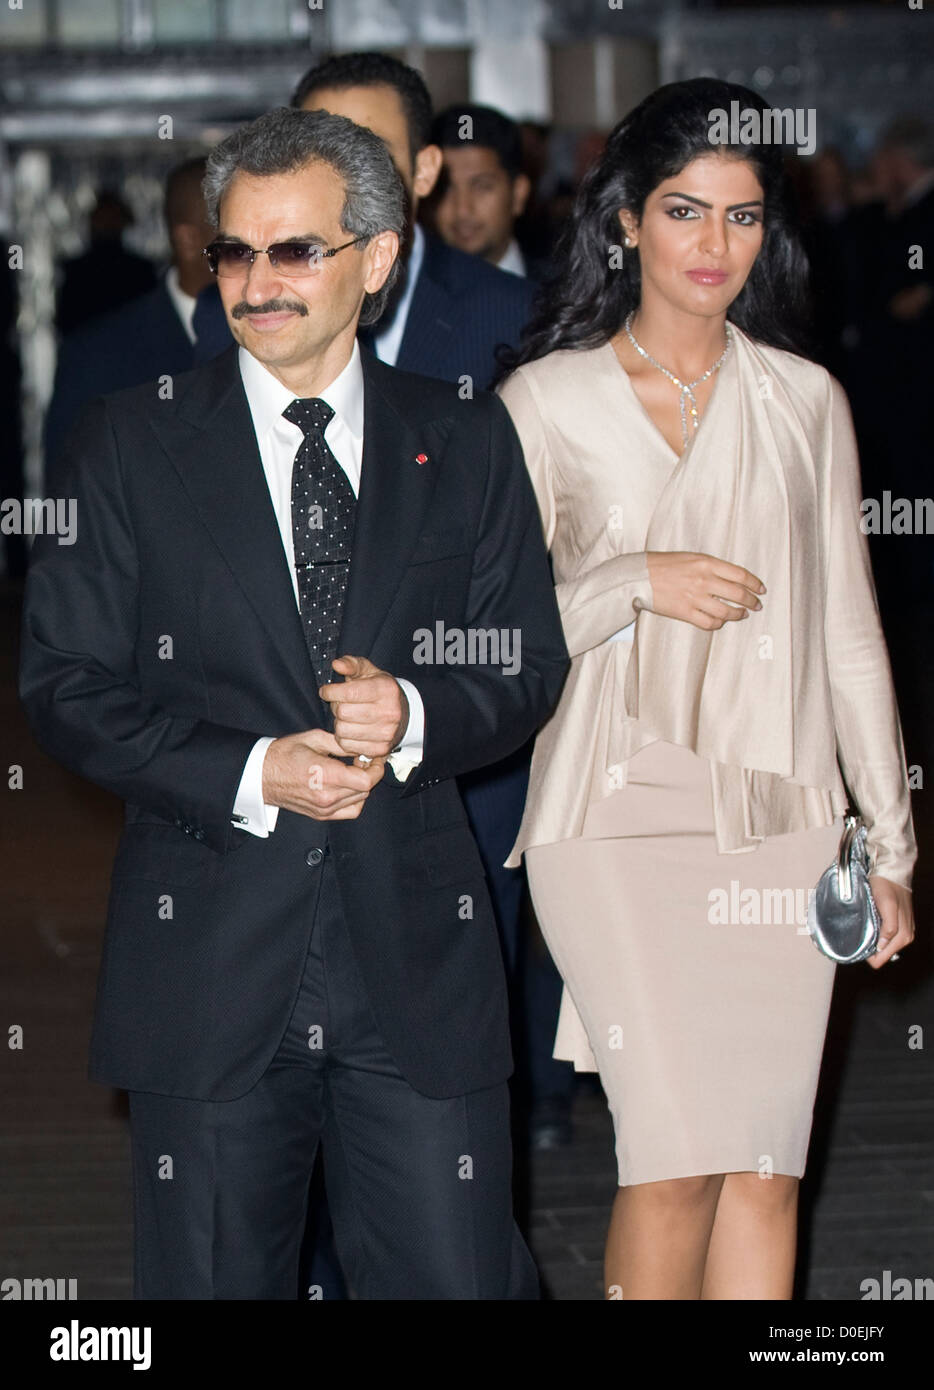 Part owner of the Savoy Hotel Prince Alwaleed Bin Talal ... Prince Alwaleed Bin Talal Wife Amira